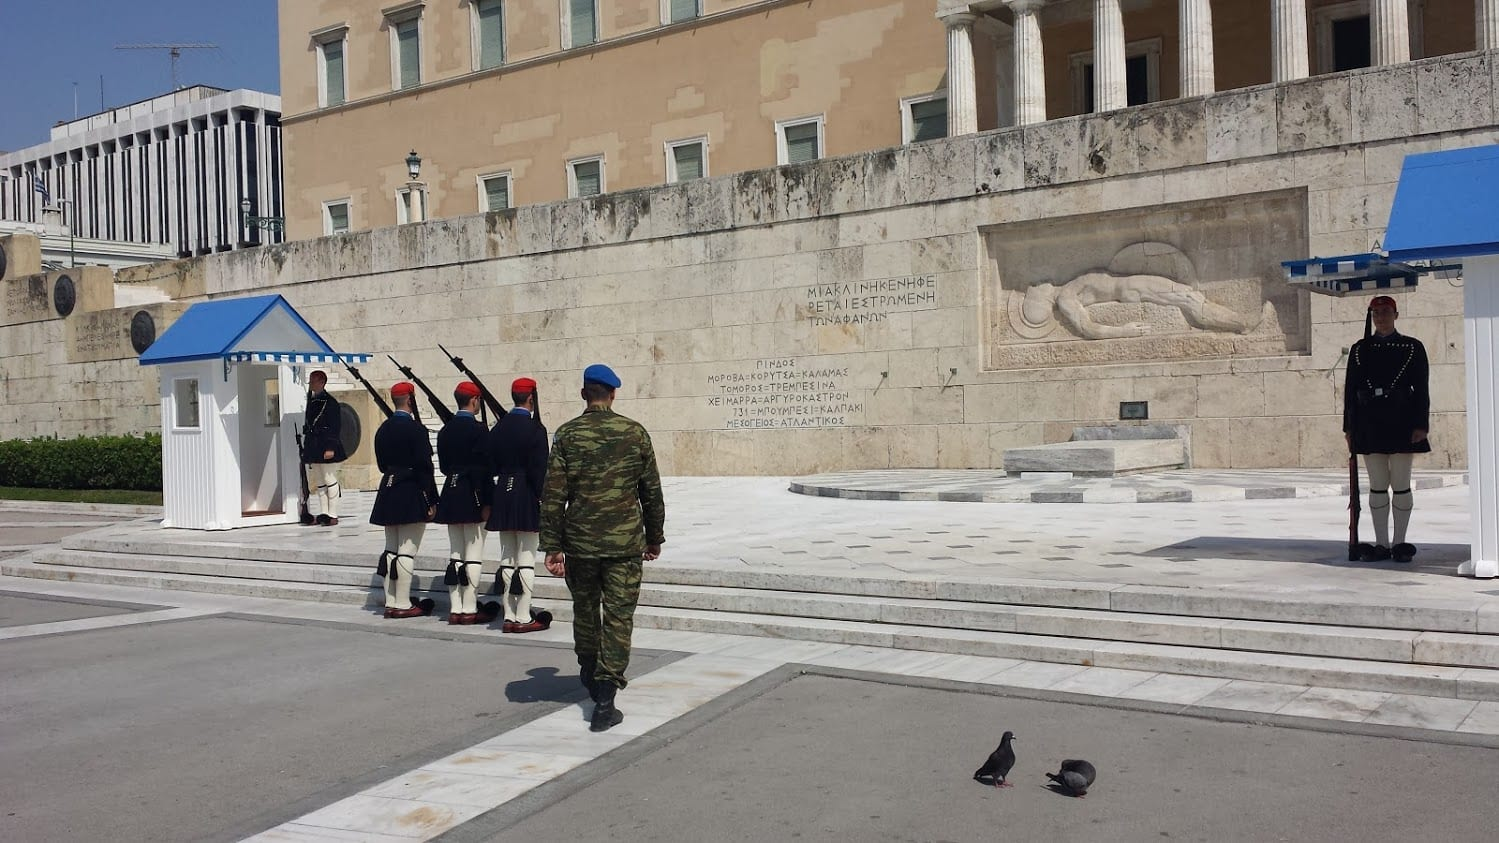 Changing of the Guard outside the Tomb of the Unknown Soldier in Athens